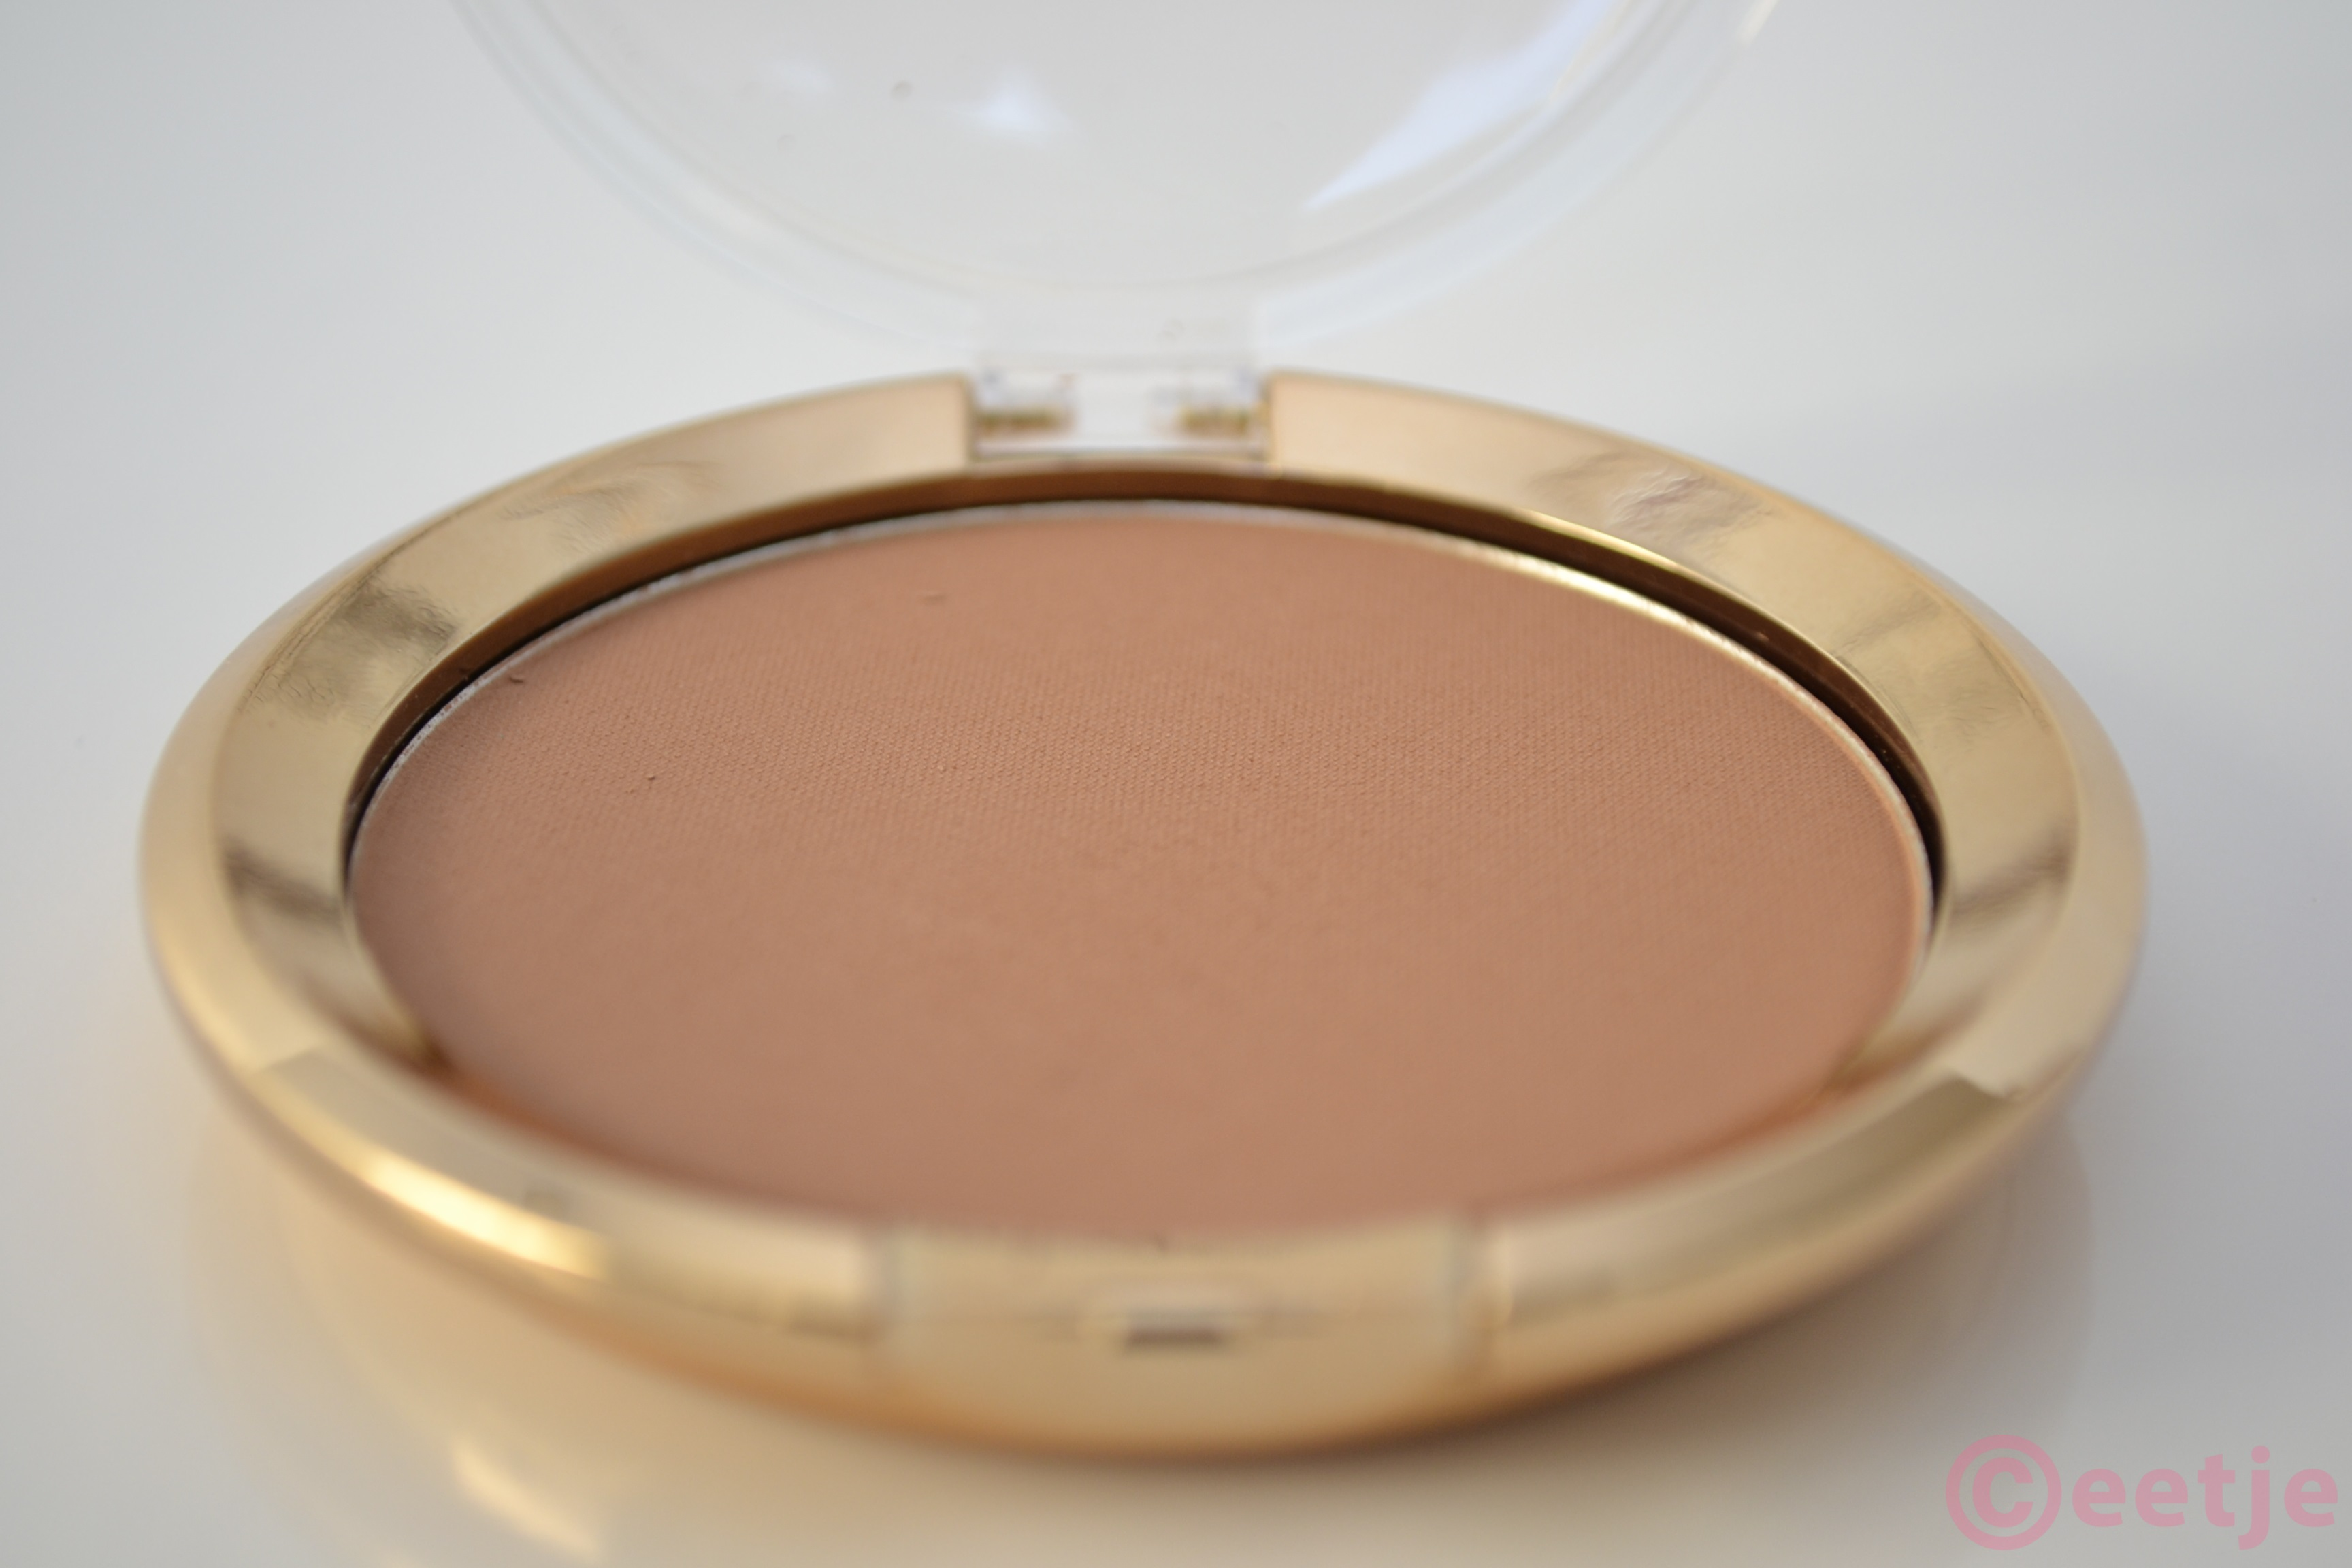 Bronzing powder H&M